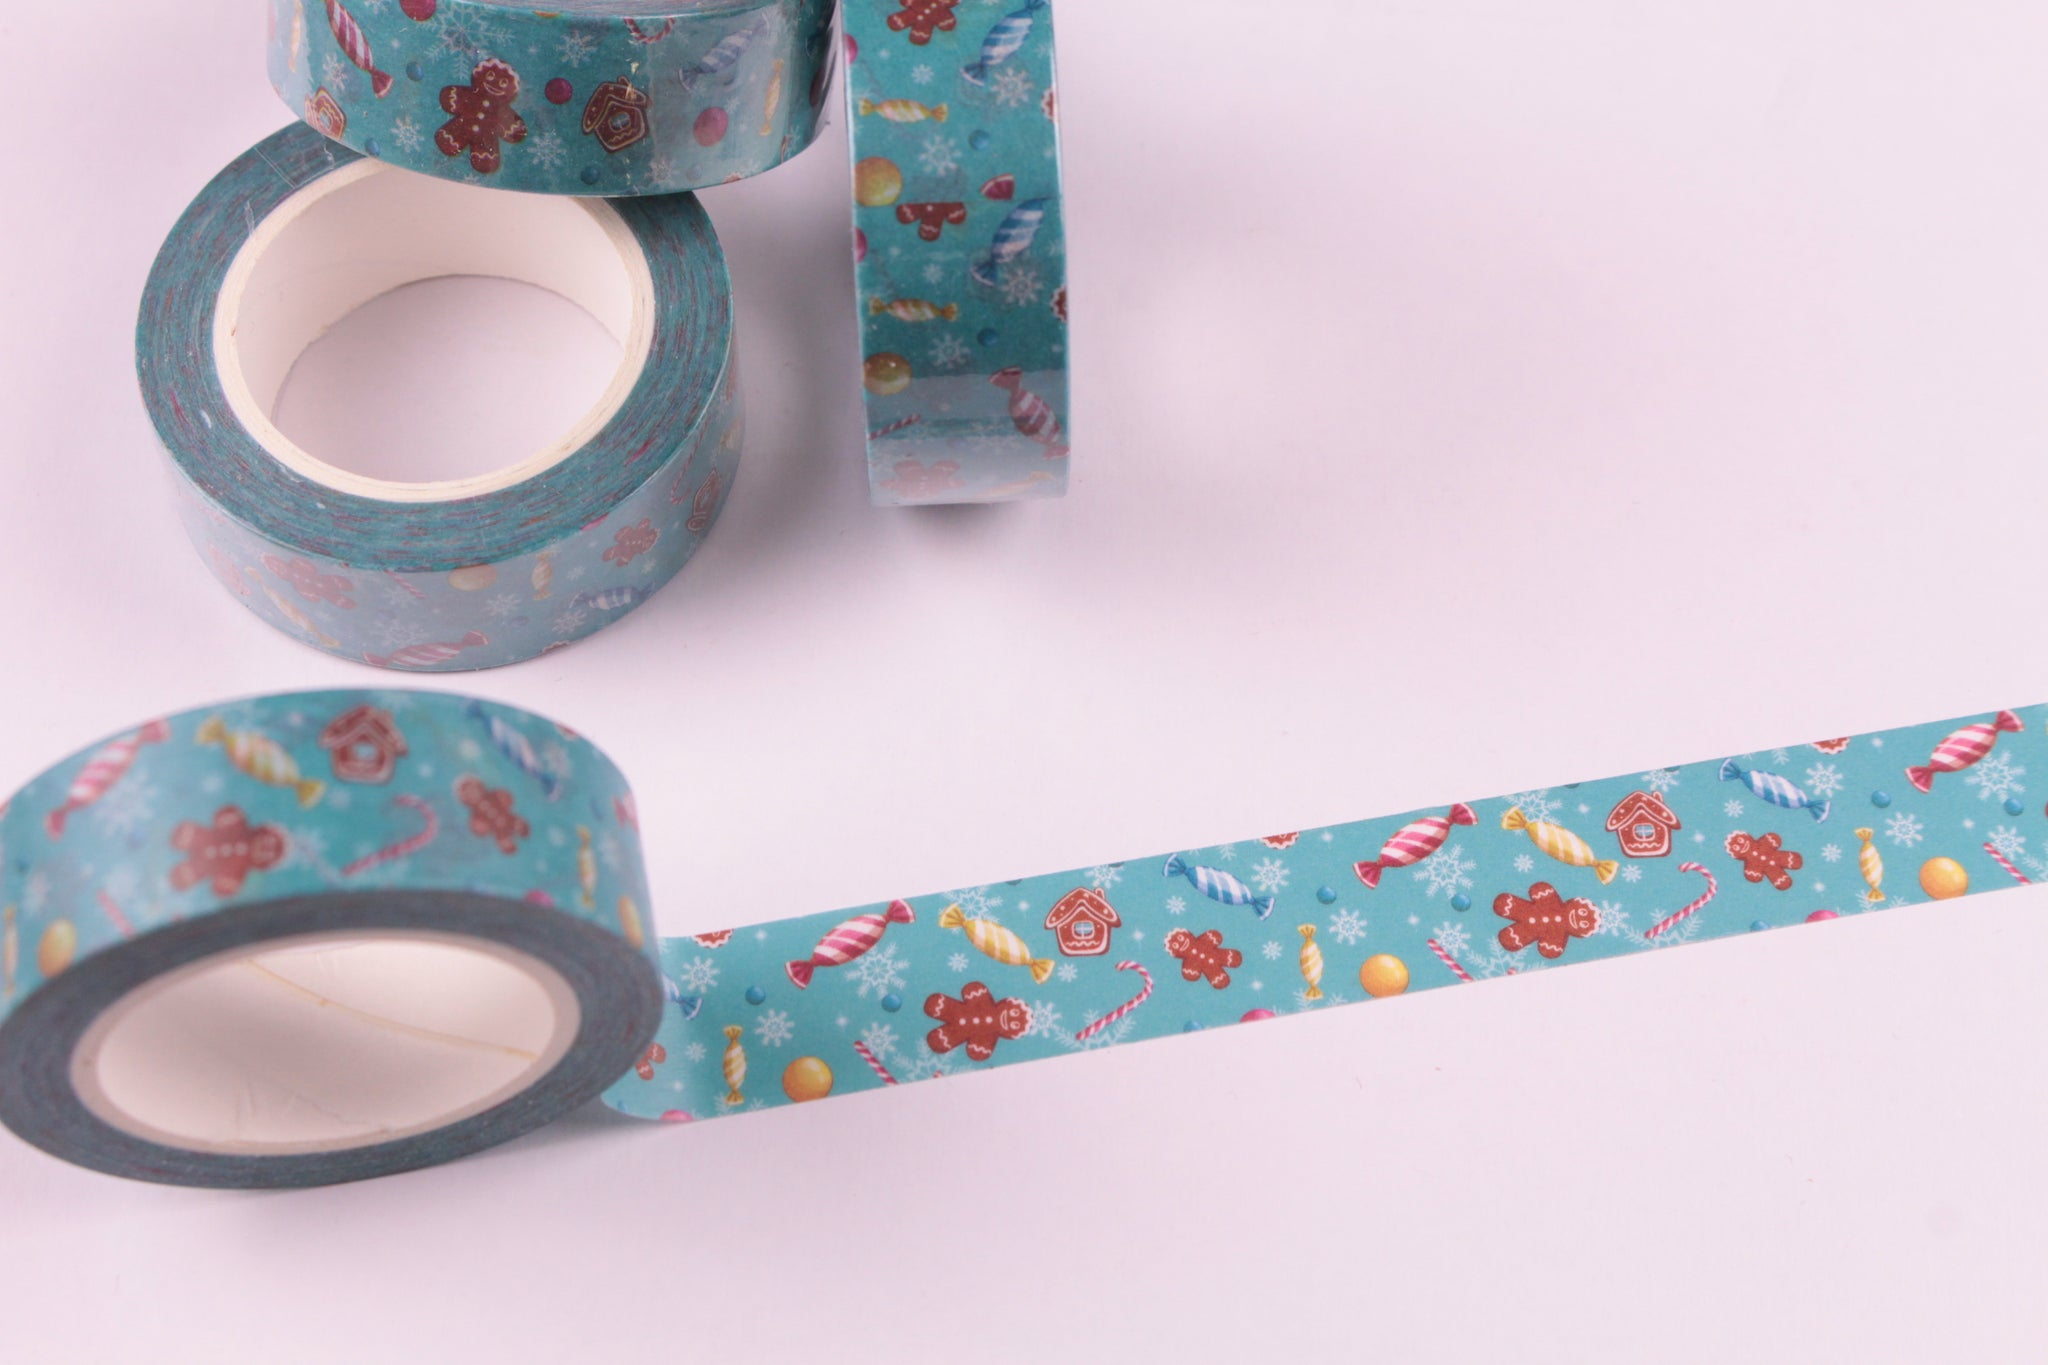 Christmas Cookies and Candy Washi tape